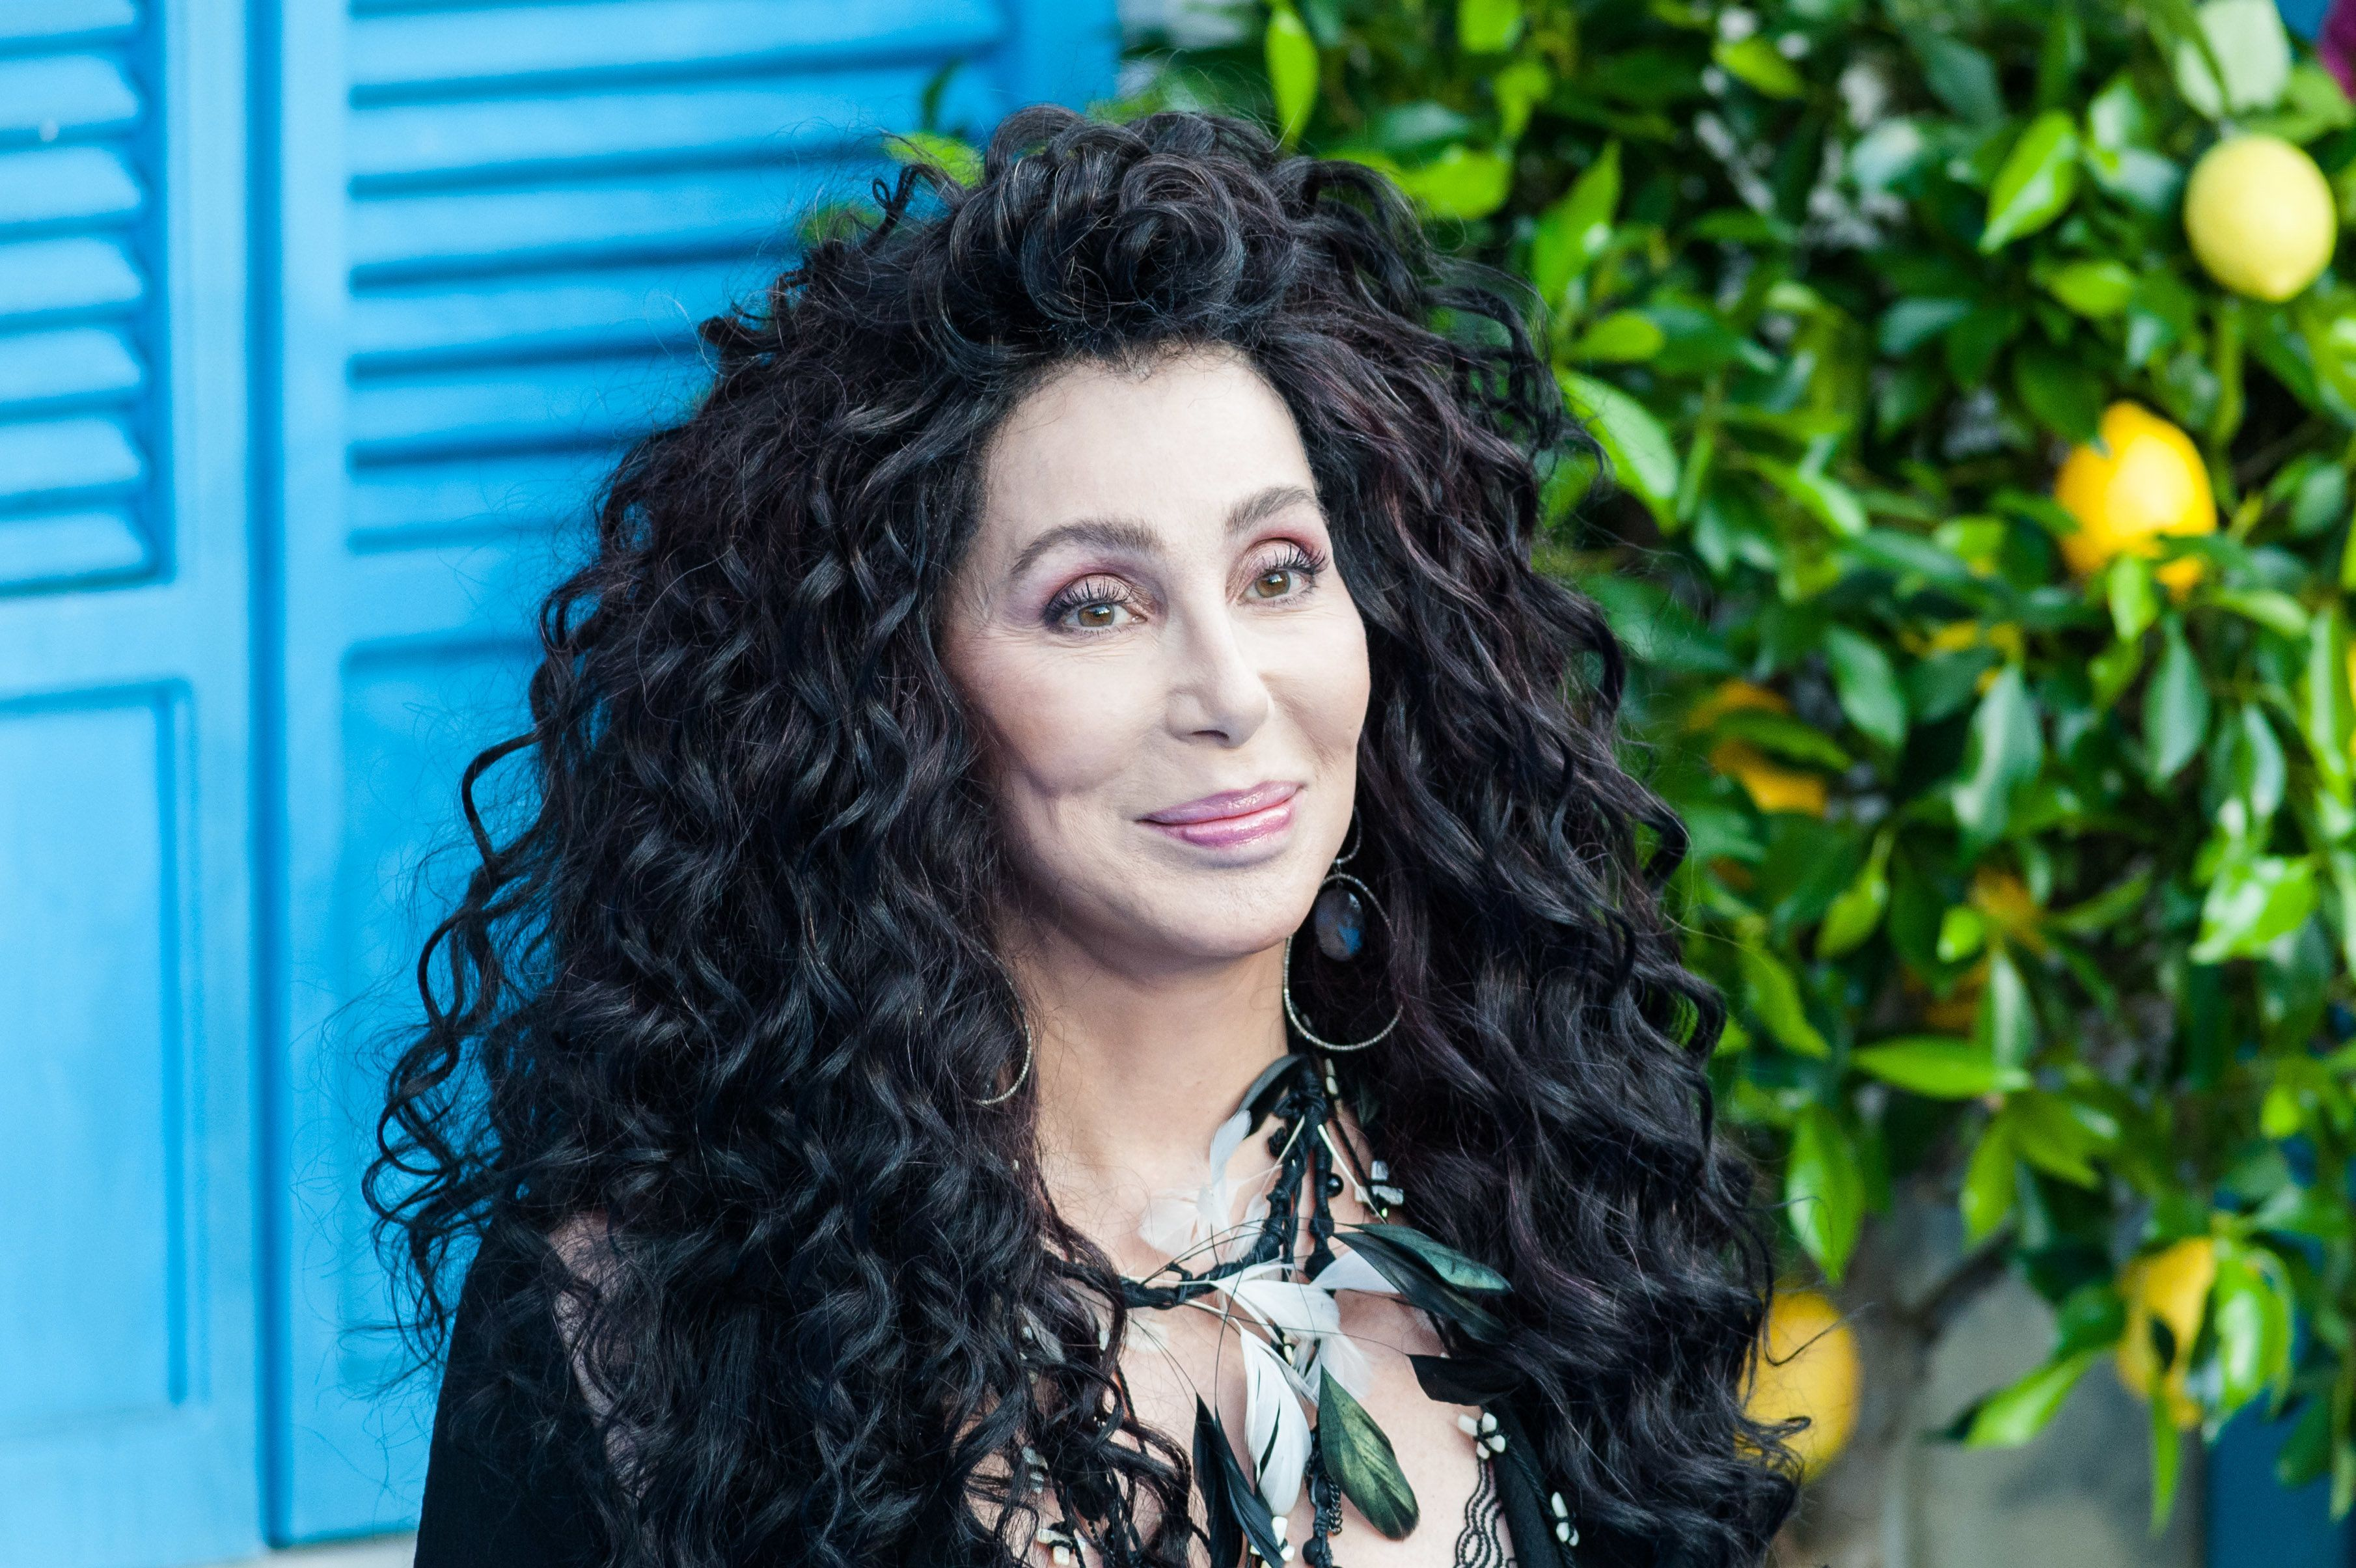 LONDON, UNITED KINGDOM - JULY 16: Cher arrives for the world film premiere of 'Mamma Mia! Here We Go Again' at Eventim Apollo, Hammersmith in London. July 16, 2018 in London, United Kingdom. (Photo credit should read Wiktor Szymanowicz / Barcroft Media via Getty Images)